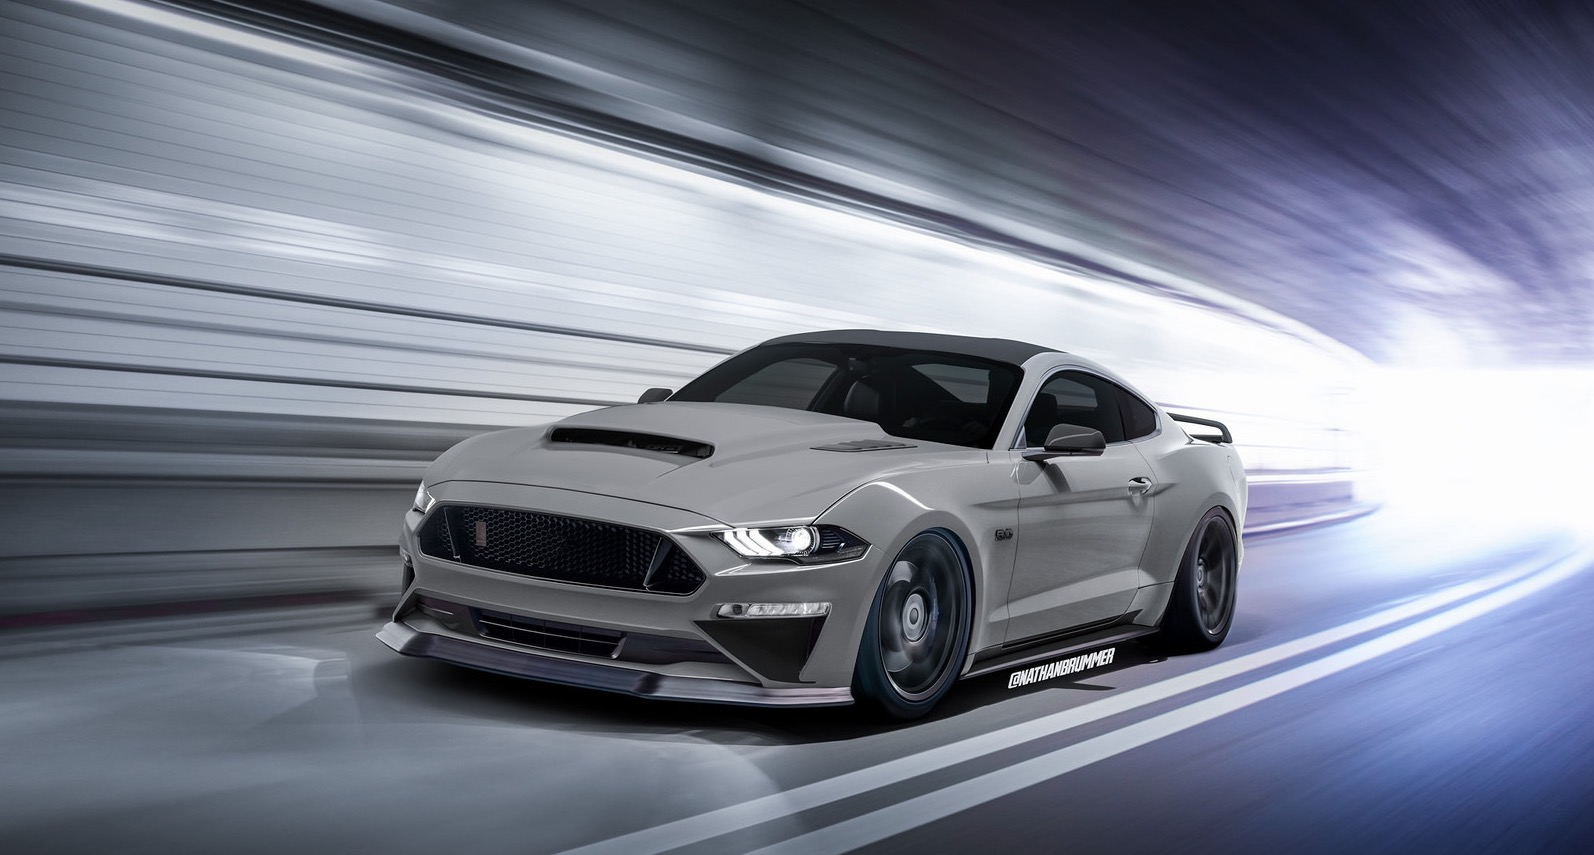 The First Car Ever Made >> What If the 2019 Shelby GT500 Mustang Looked Like This ...